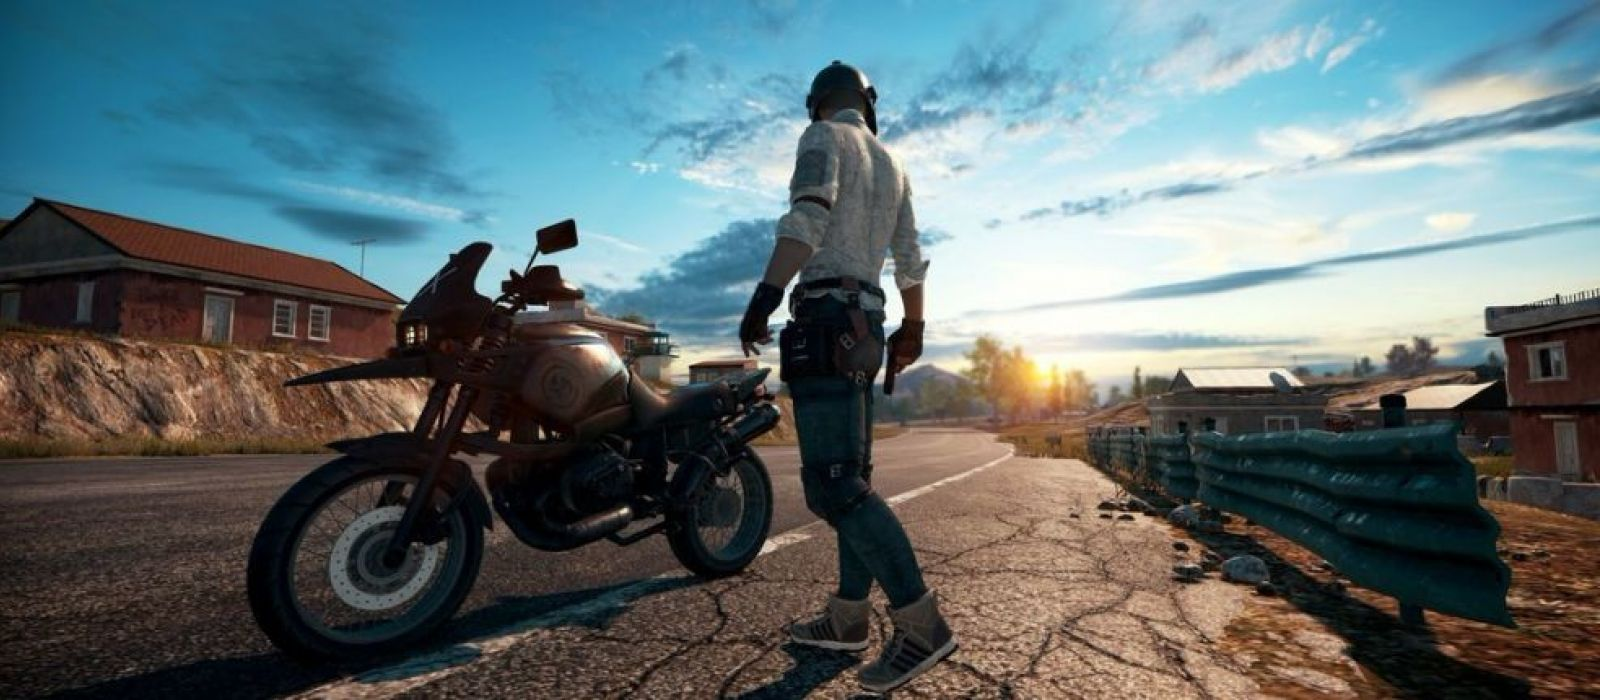 Playerunknown's Battlegrounds плохо работает на Xbox One/X